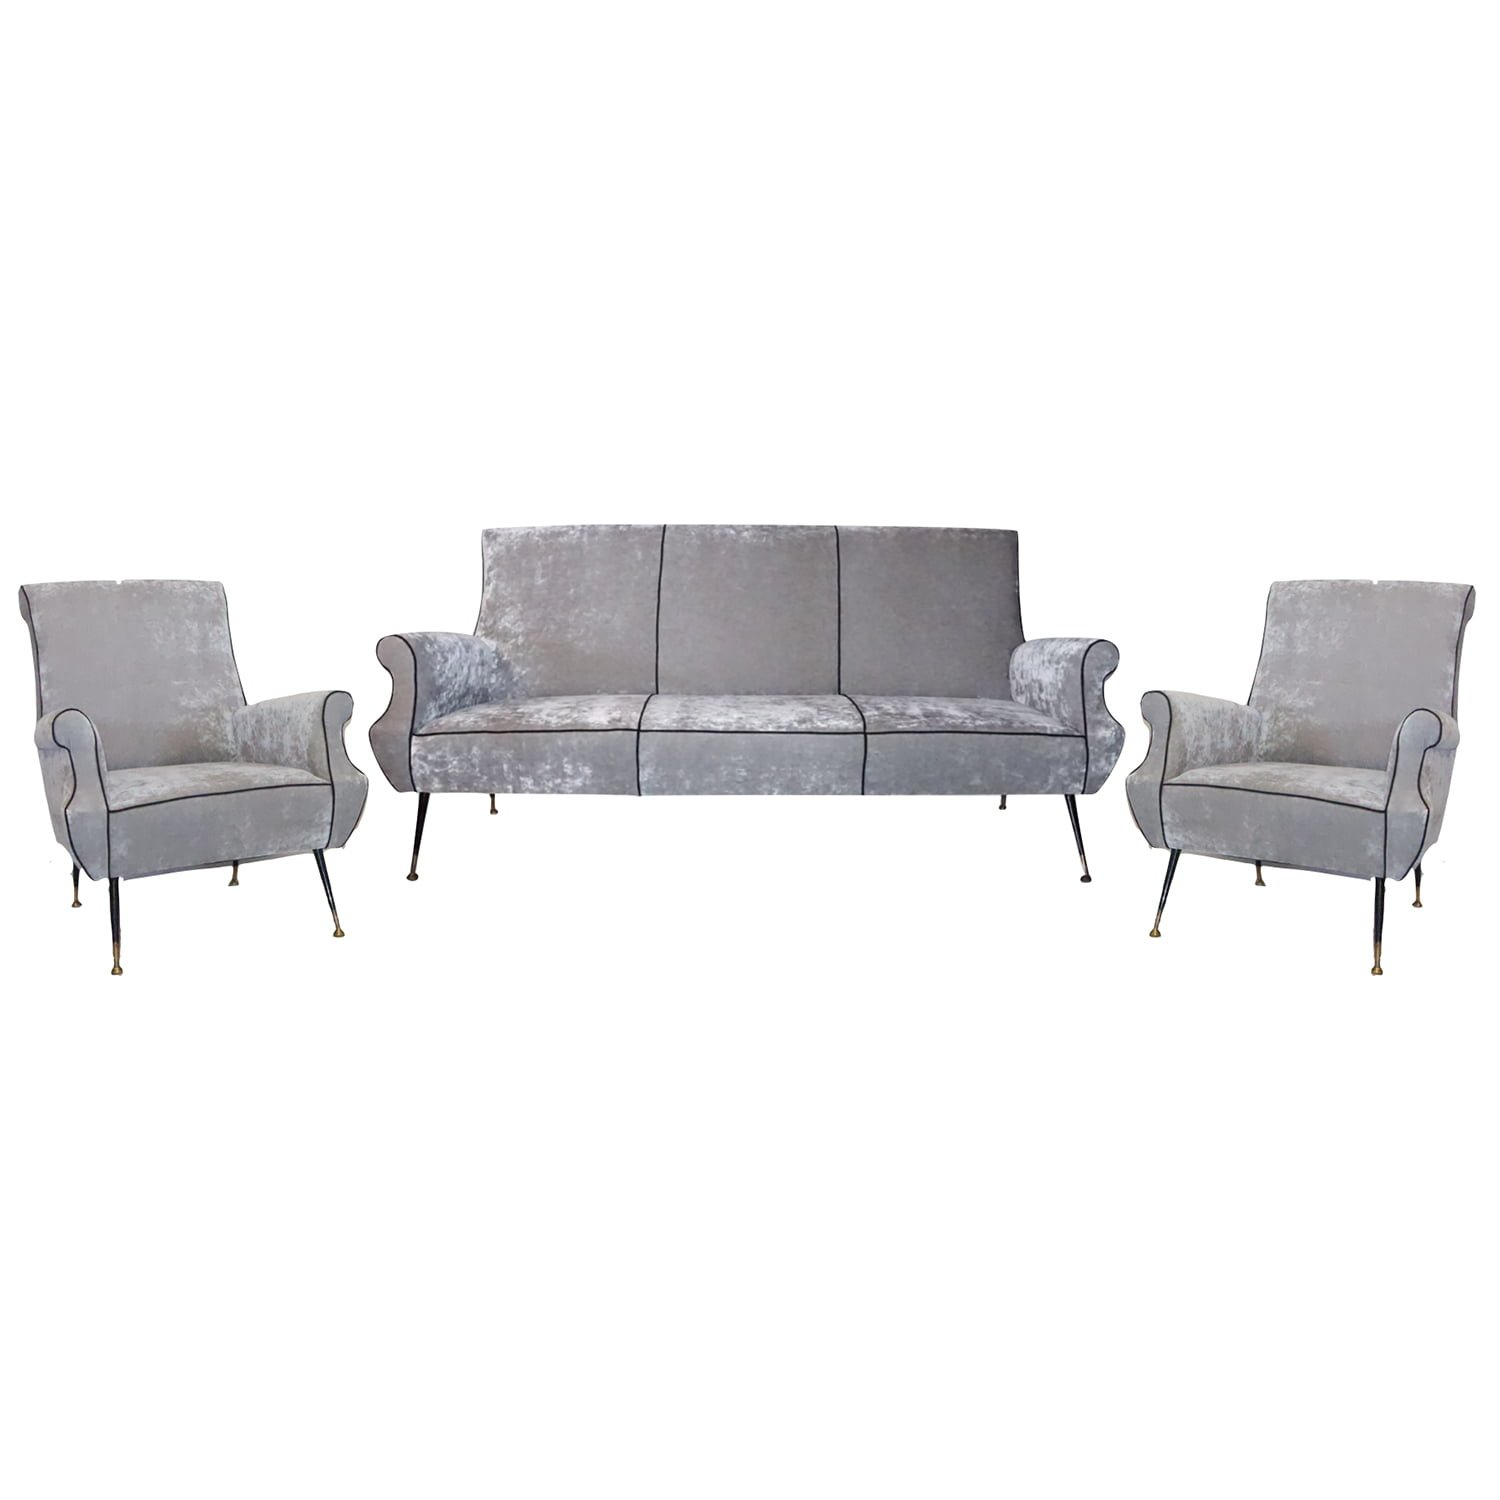 20th Century Italian Minotti Living Room Set by Gigi Radice